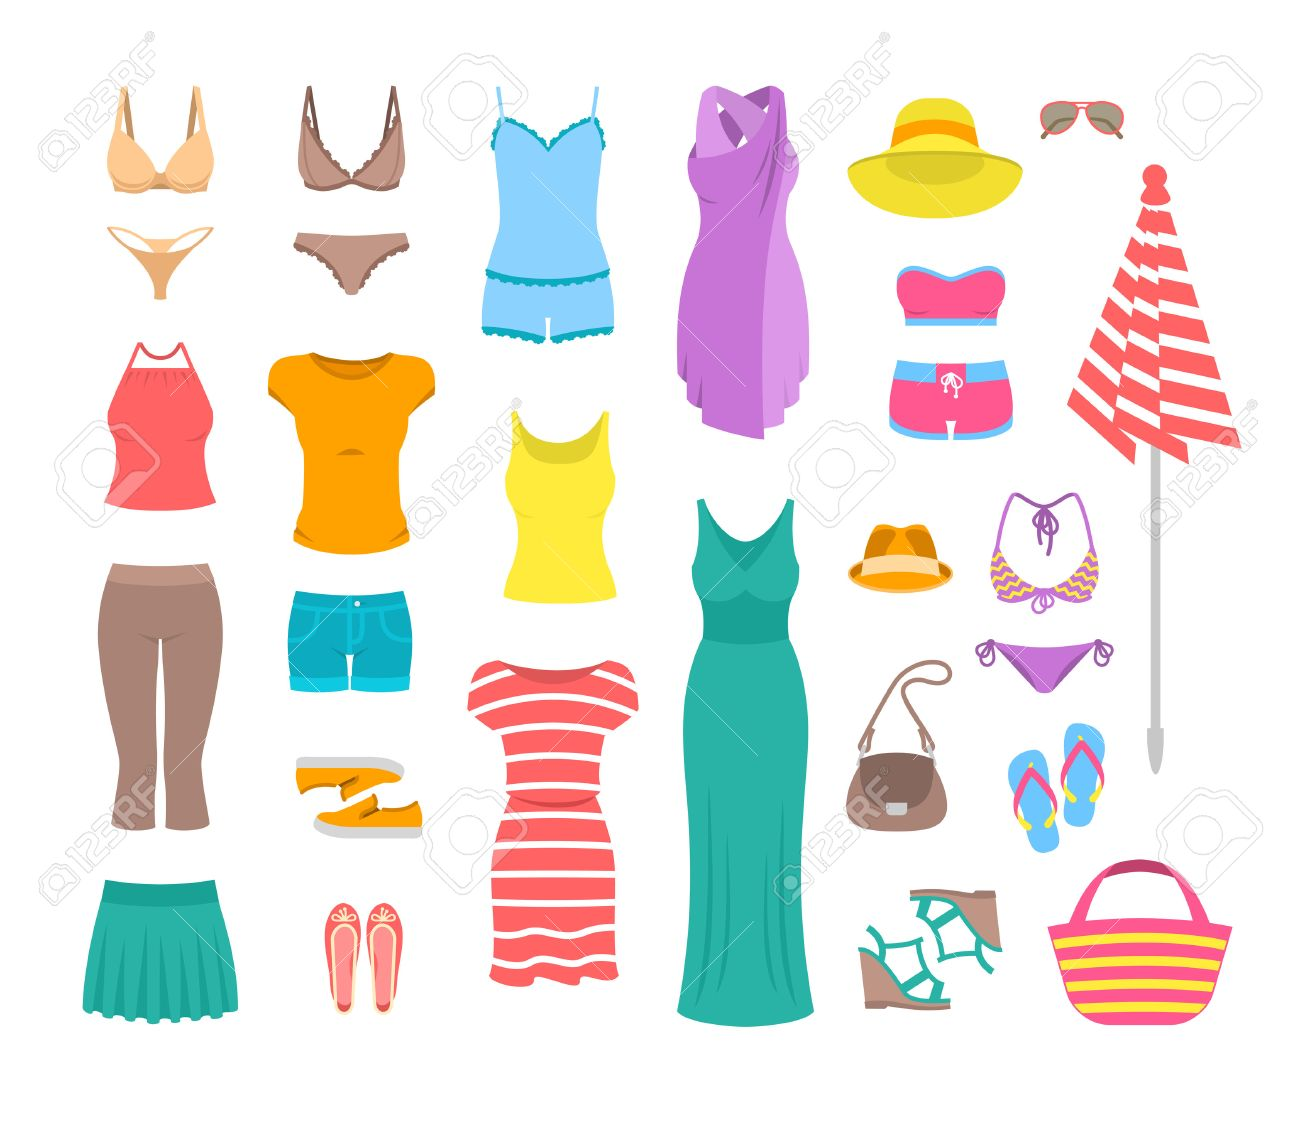 Summer female outfit flat icons. Women clothes and accessories collection for summer vacation. Casual fashion infographic elements. Basic tops, skirt, shorts, shoes, dresses, beach clothing - 58595676